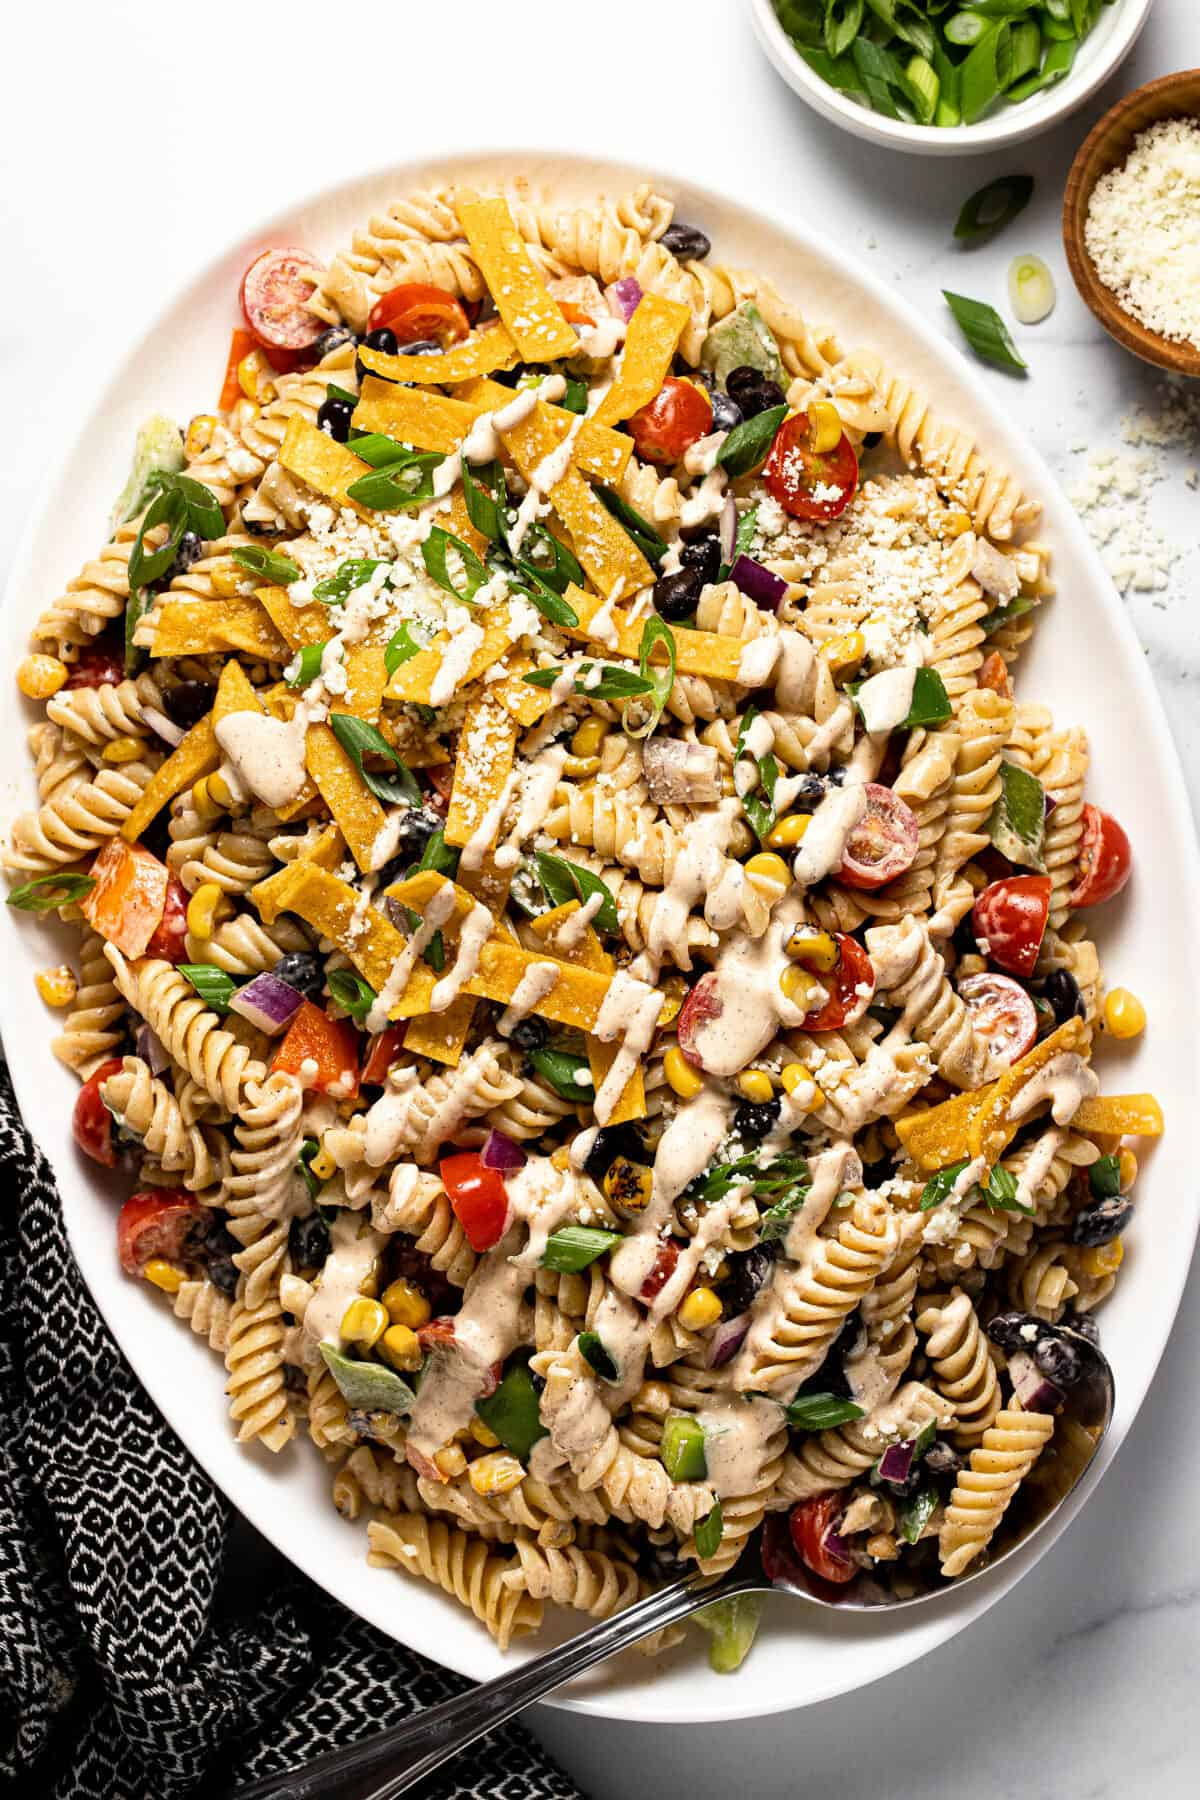 Large white serving platter filled with homemade creamy taco pasta salad